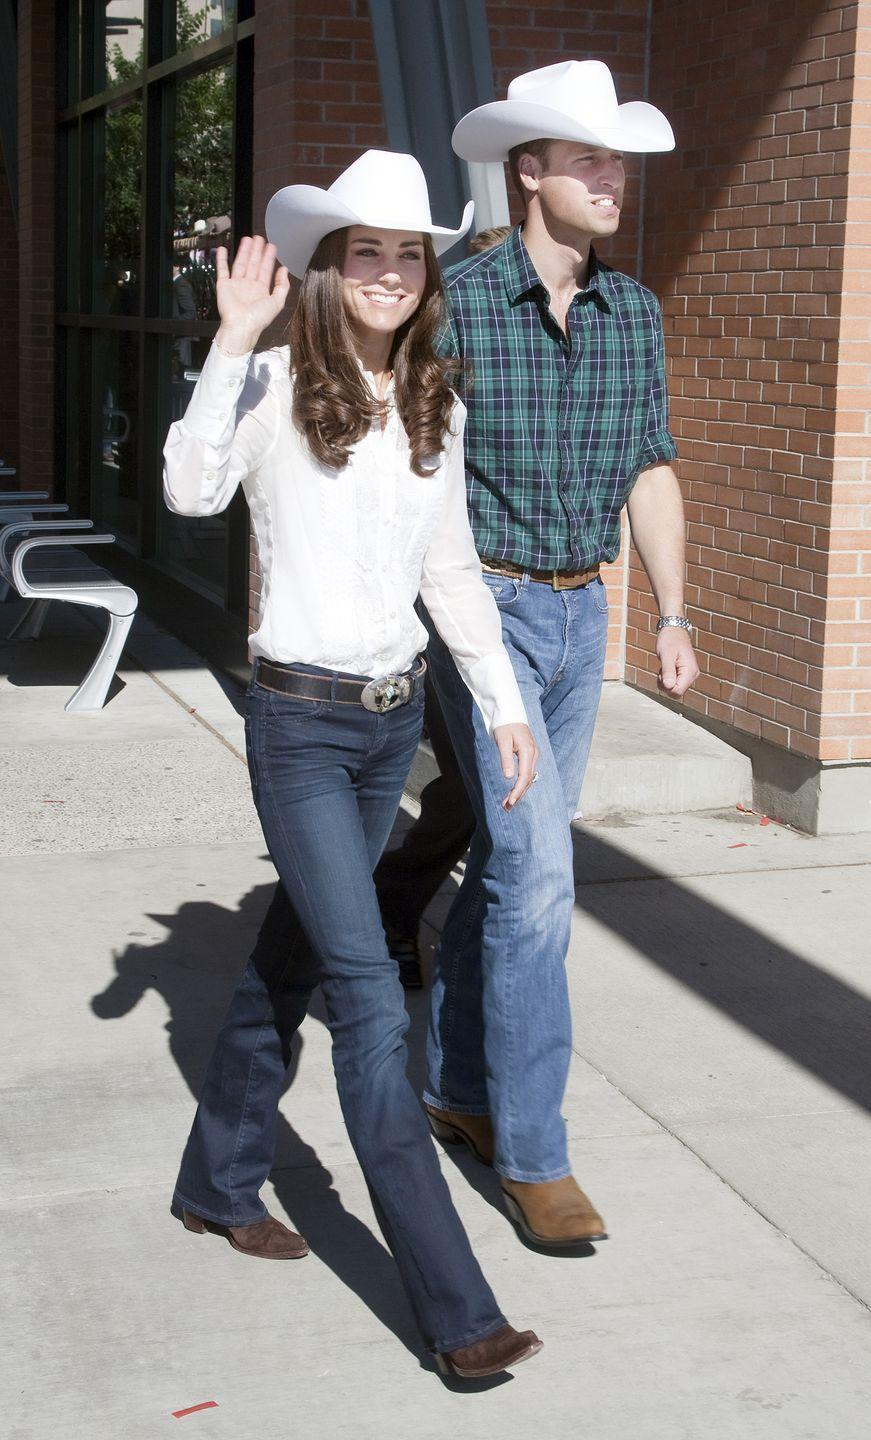 <p>Okay, yes, the cowboy look is totally unexpected (especially for these two) but also totally perfect in every way. The dark blue flare jeans! The white Oxford shirts! The boots! I mean, Will and Kate wore literal <em>cowboy hats</em> during their 2011 trip to Canada. I love it. </p>